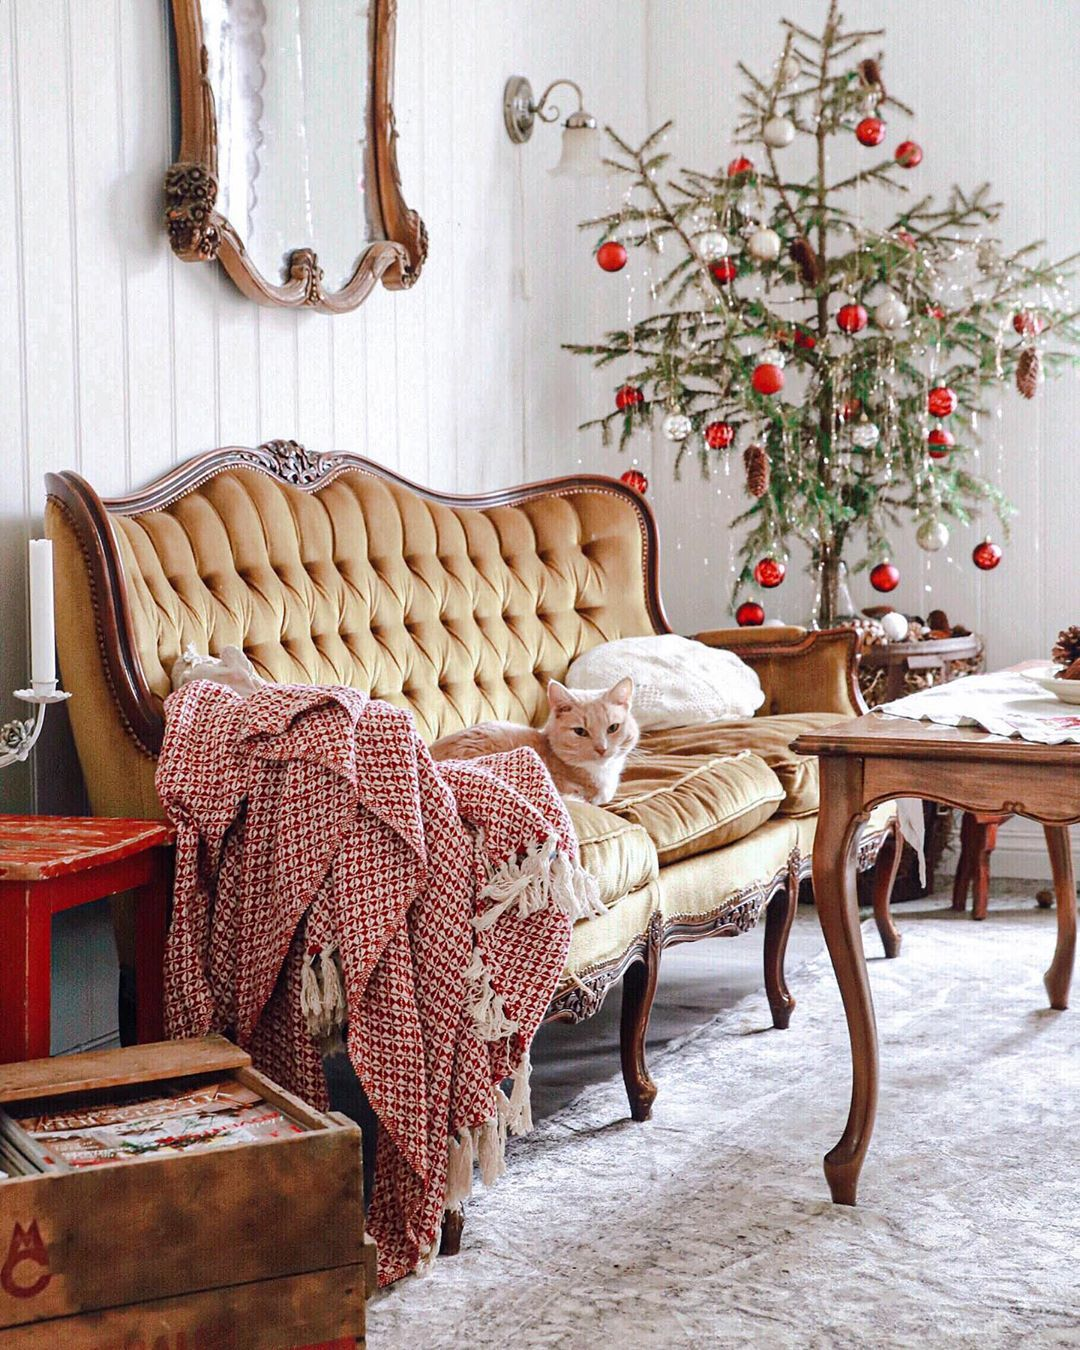 Katrine Pedersen Haakon On Instagram Etter At Jeg Begynte A Jobbe Pa Land I Vares Fra Bysse Mice En Pla Cottage Living Rooms Cottage Living Living Room